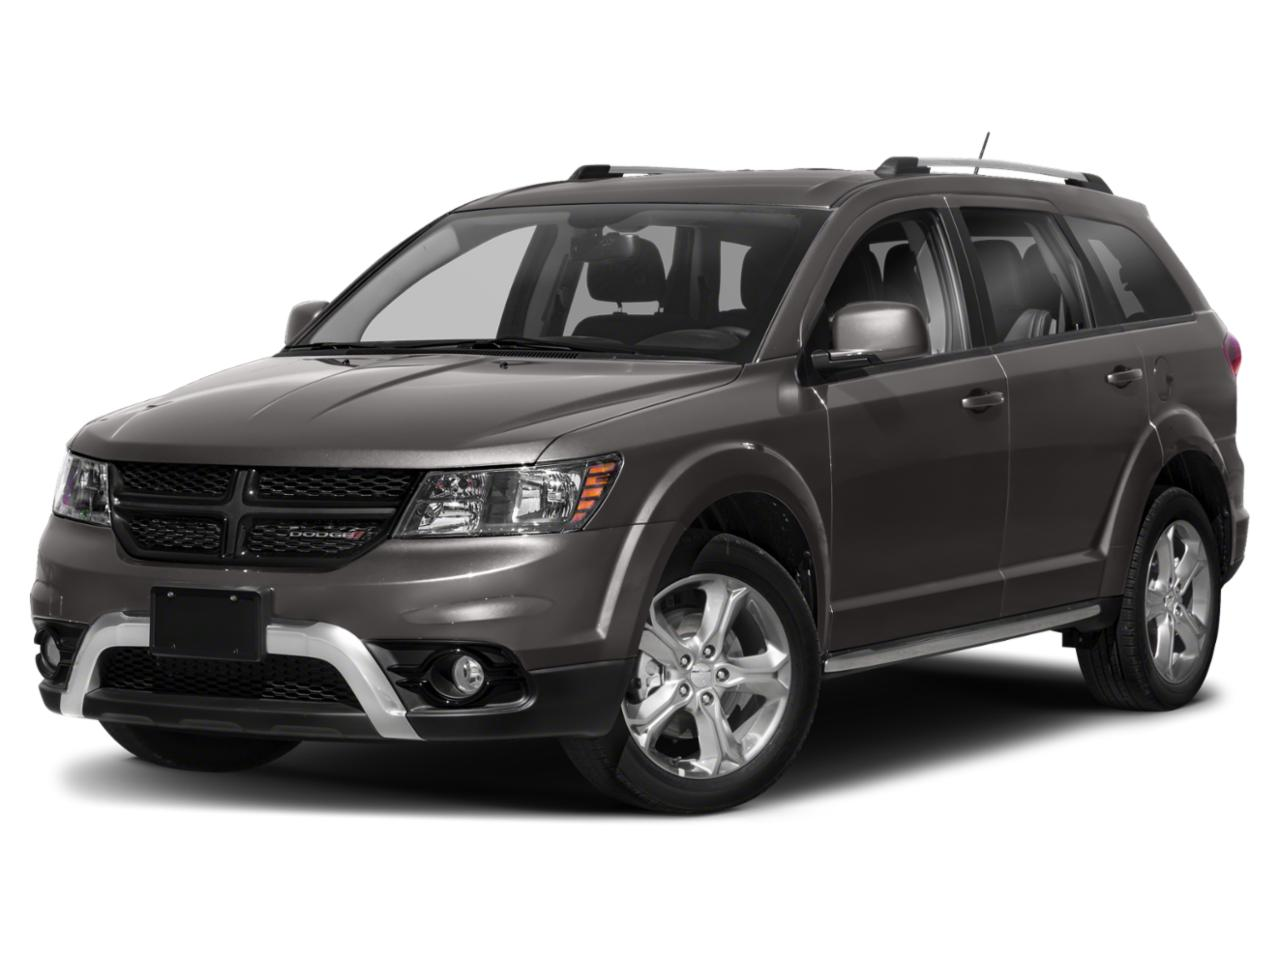 2018 Dodge Journey Vehicle Photo in Neenah, WI 54956